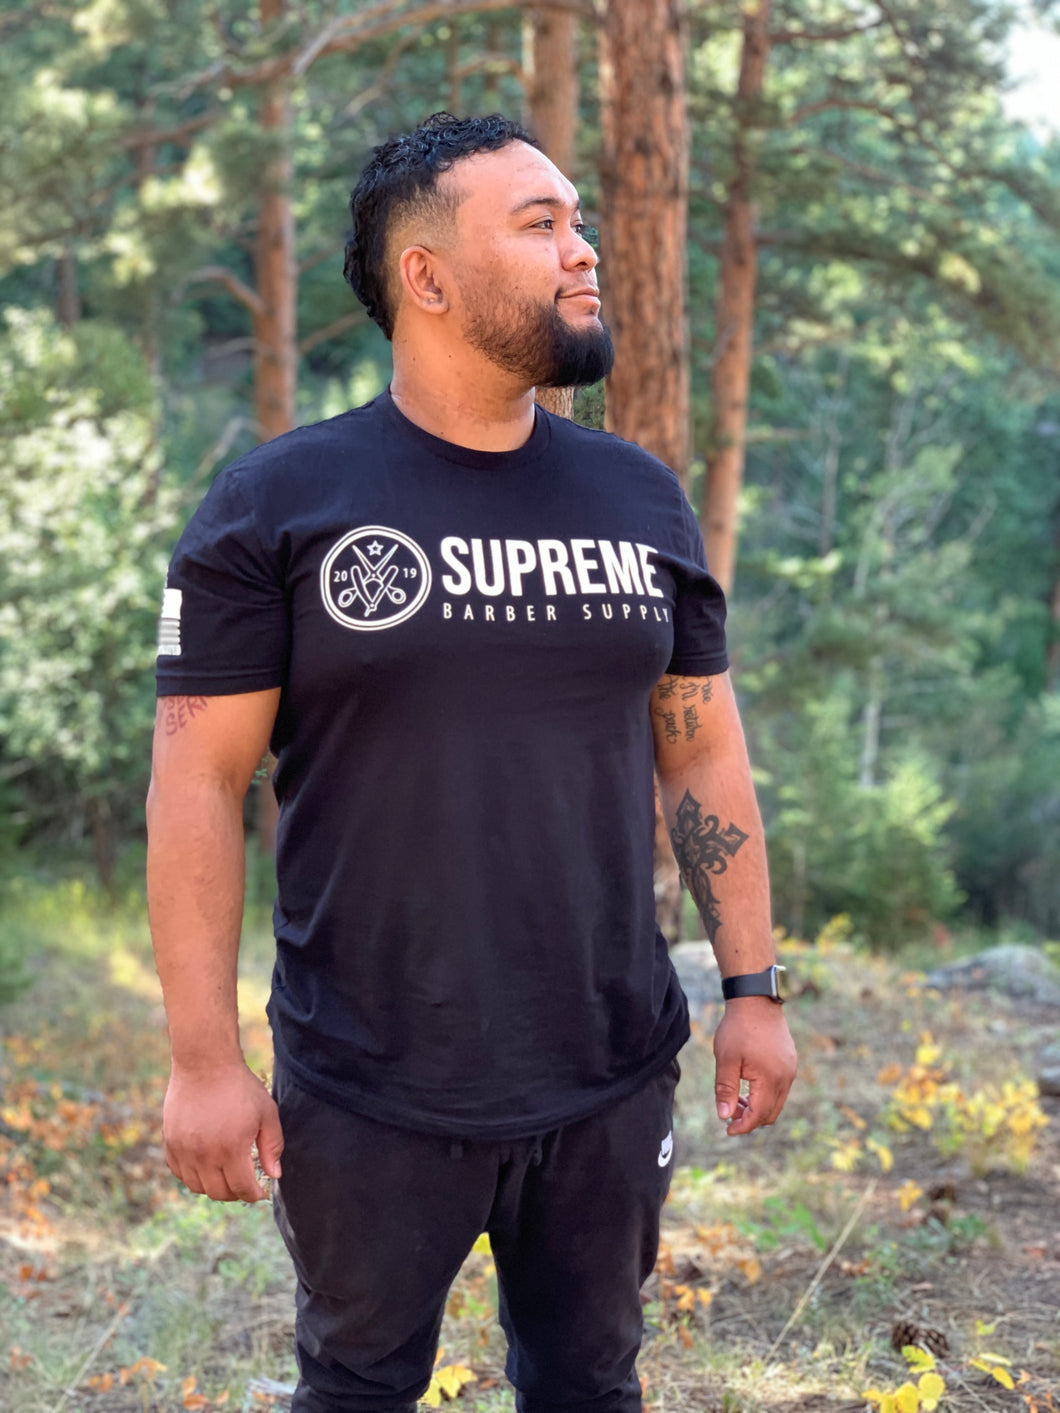 Supreme Barber Supply Black T-Shirt